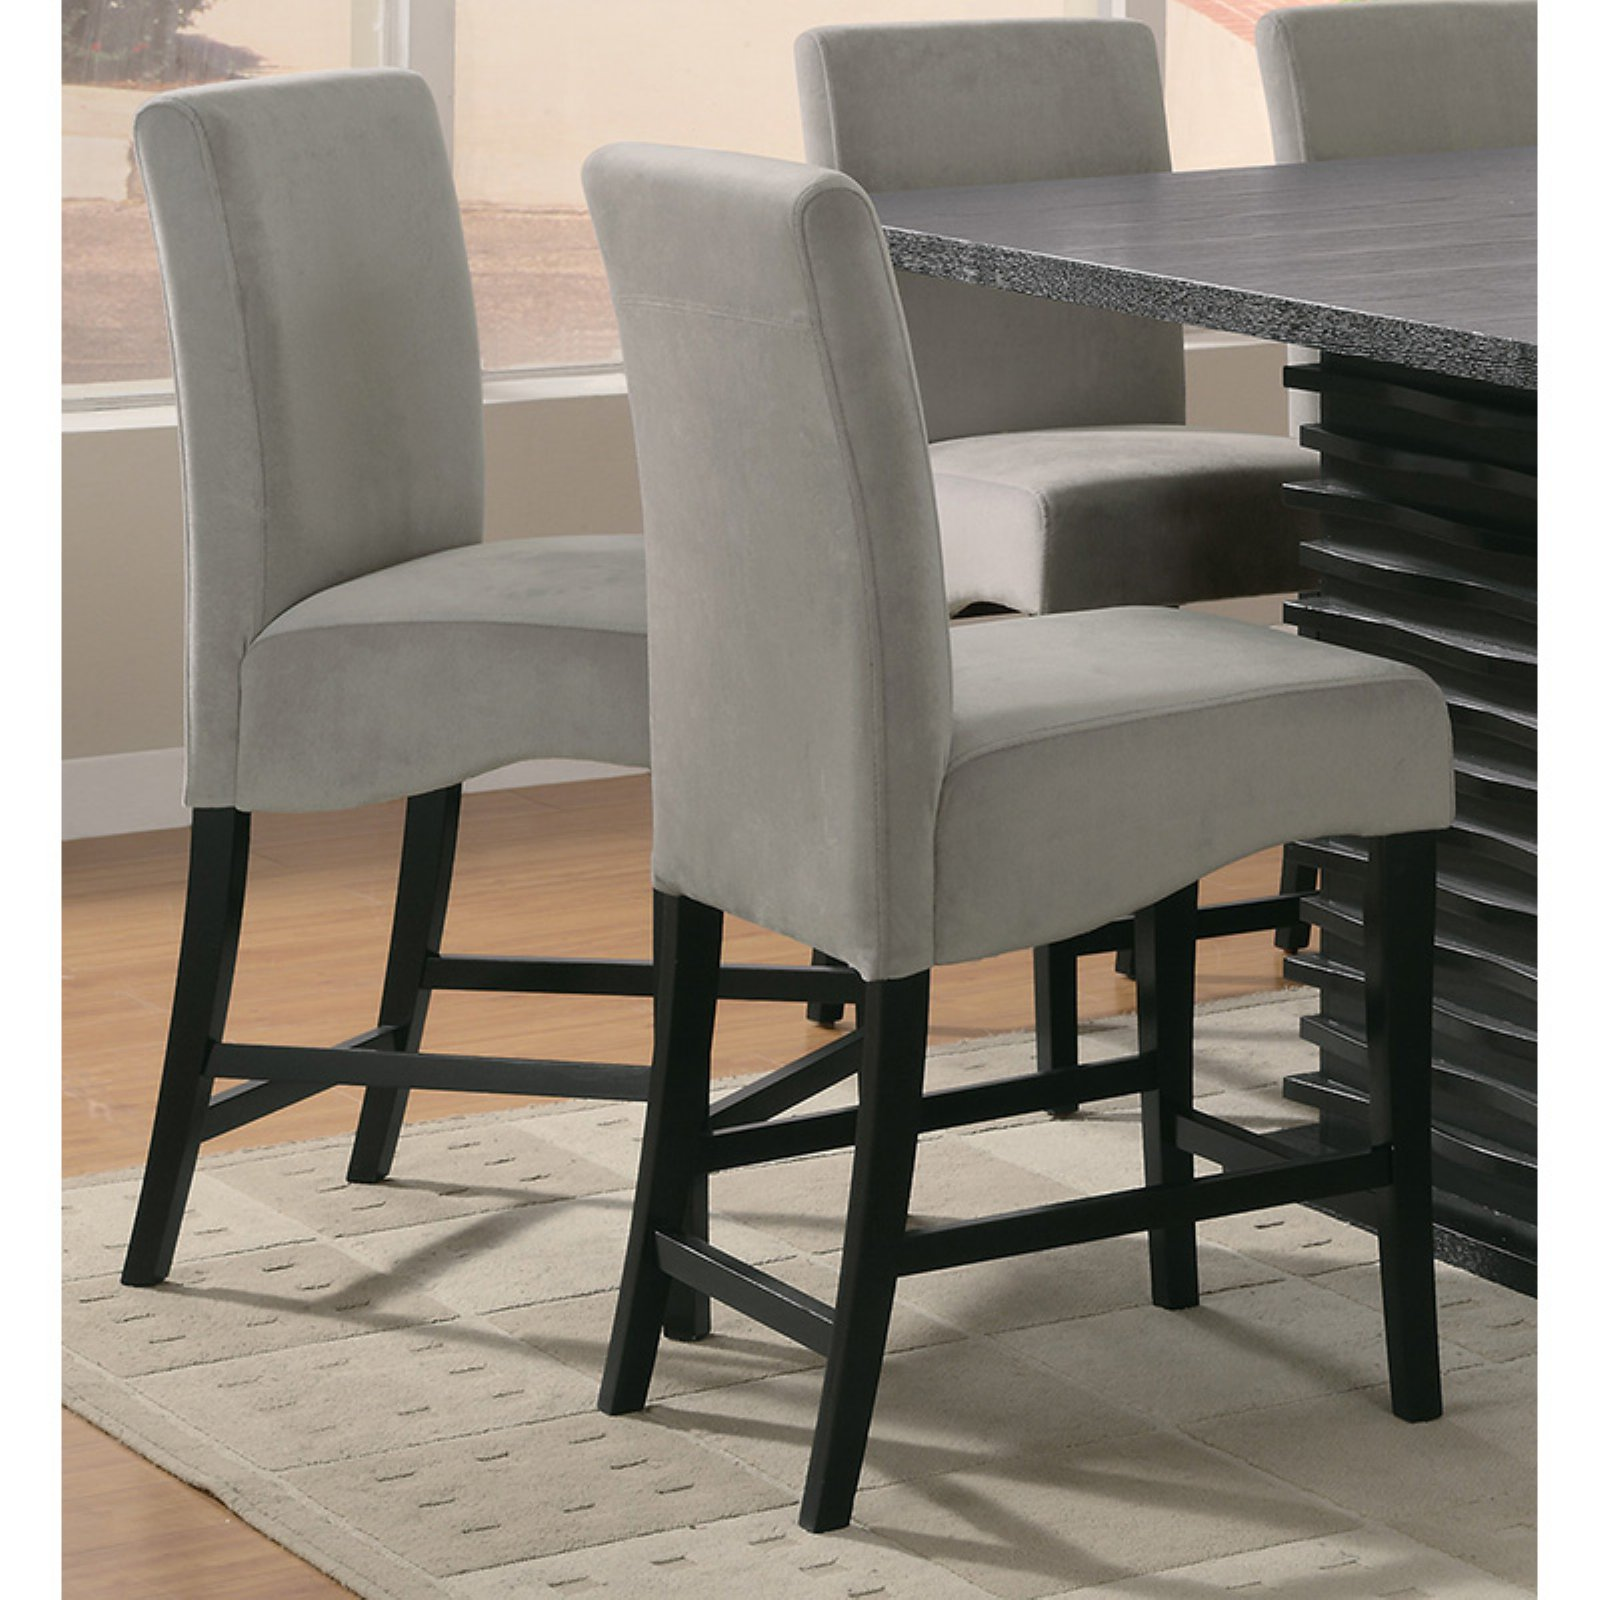 Coaster Furniture Stanton 42 in. Counter Height Chair - Set of 2